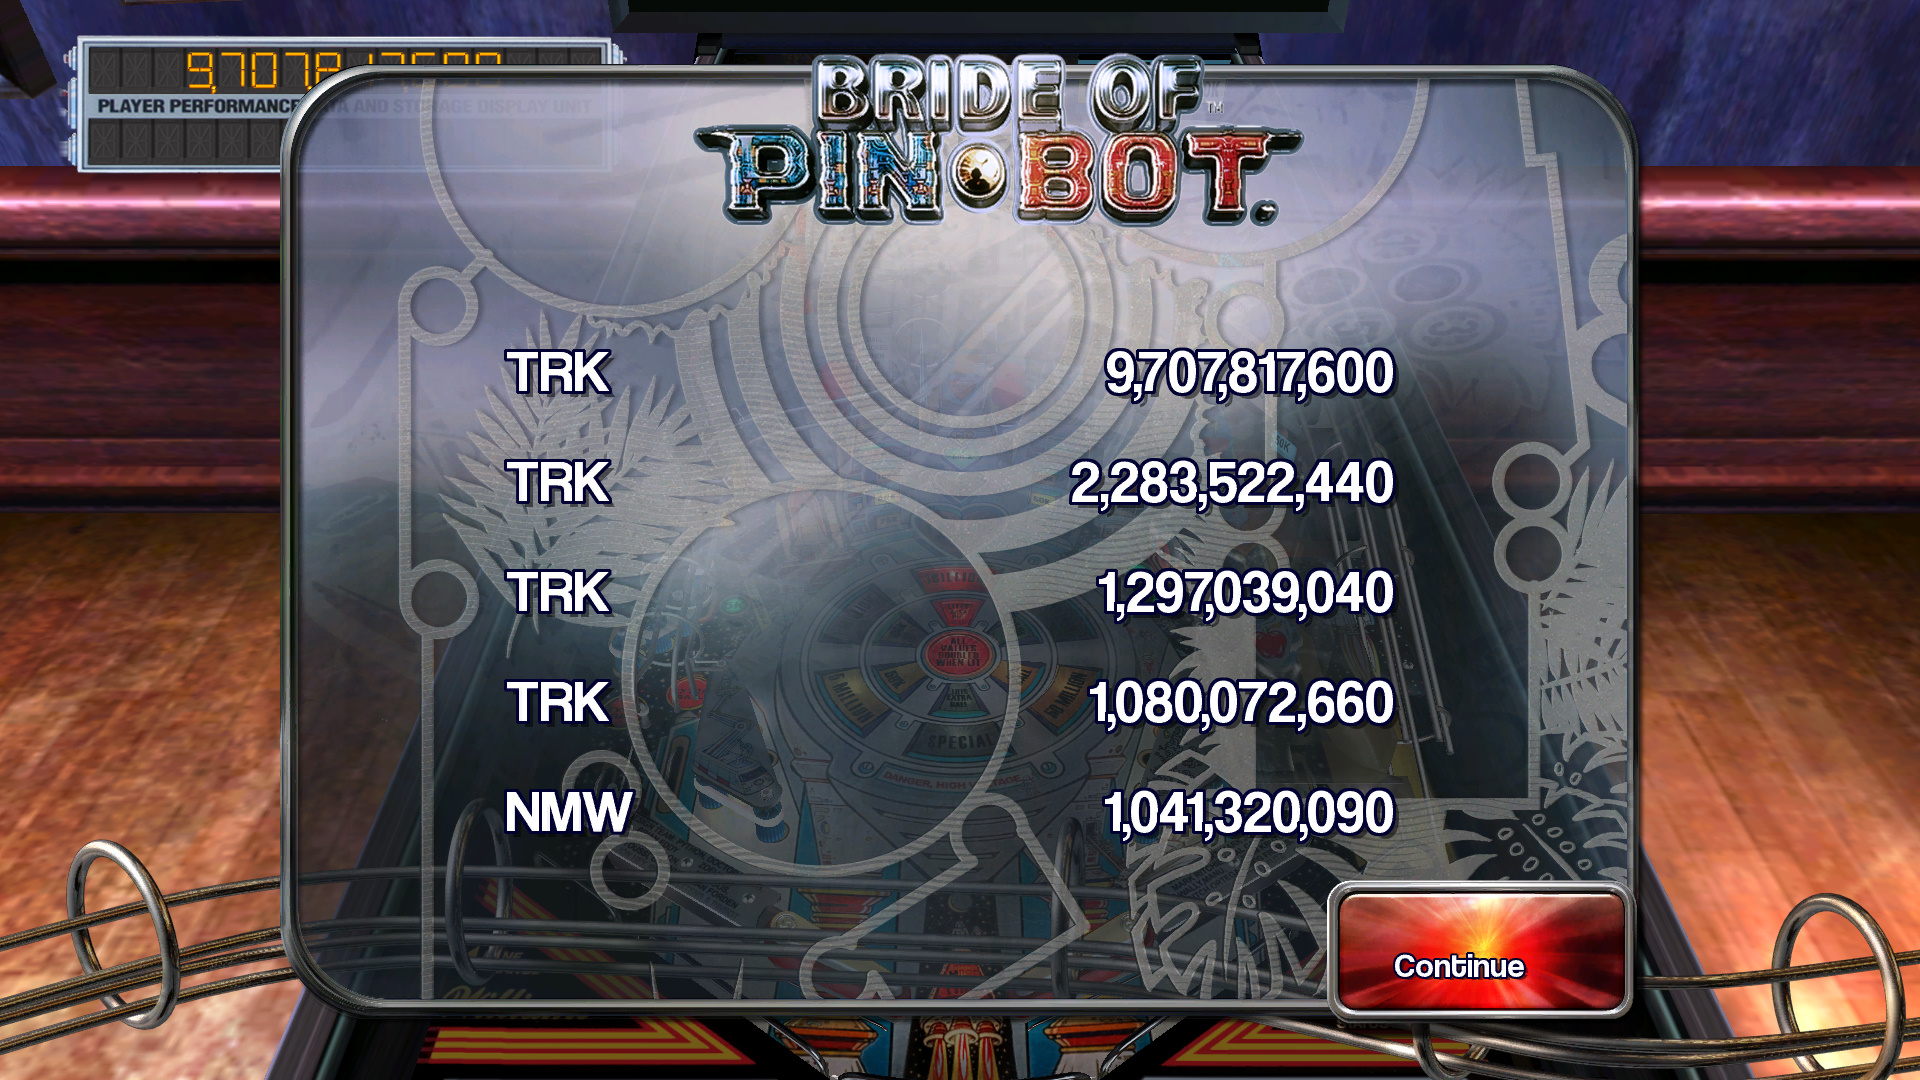 TheTrickster: Pinball Arcade: The Machine: Bride of Pin*Bot (PC) 9,707,817,600 points on 2015-09-22 09:30:58